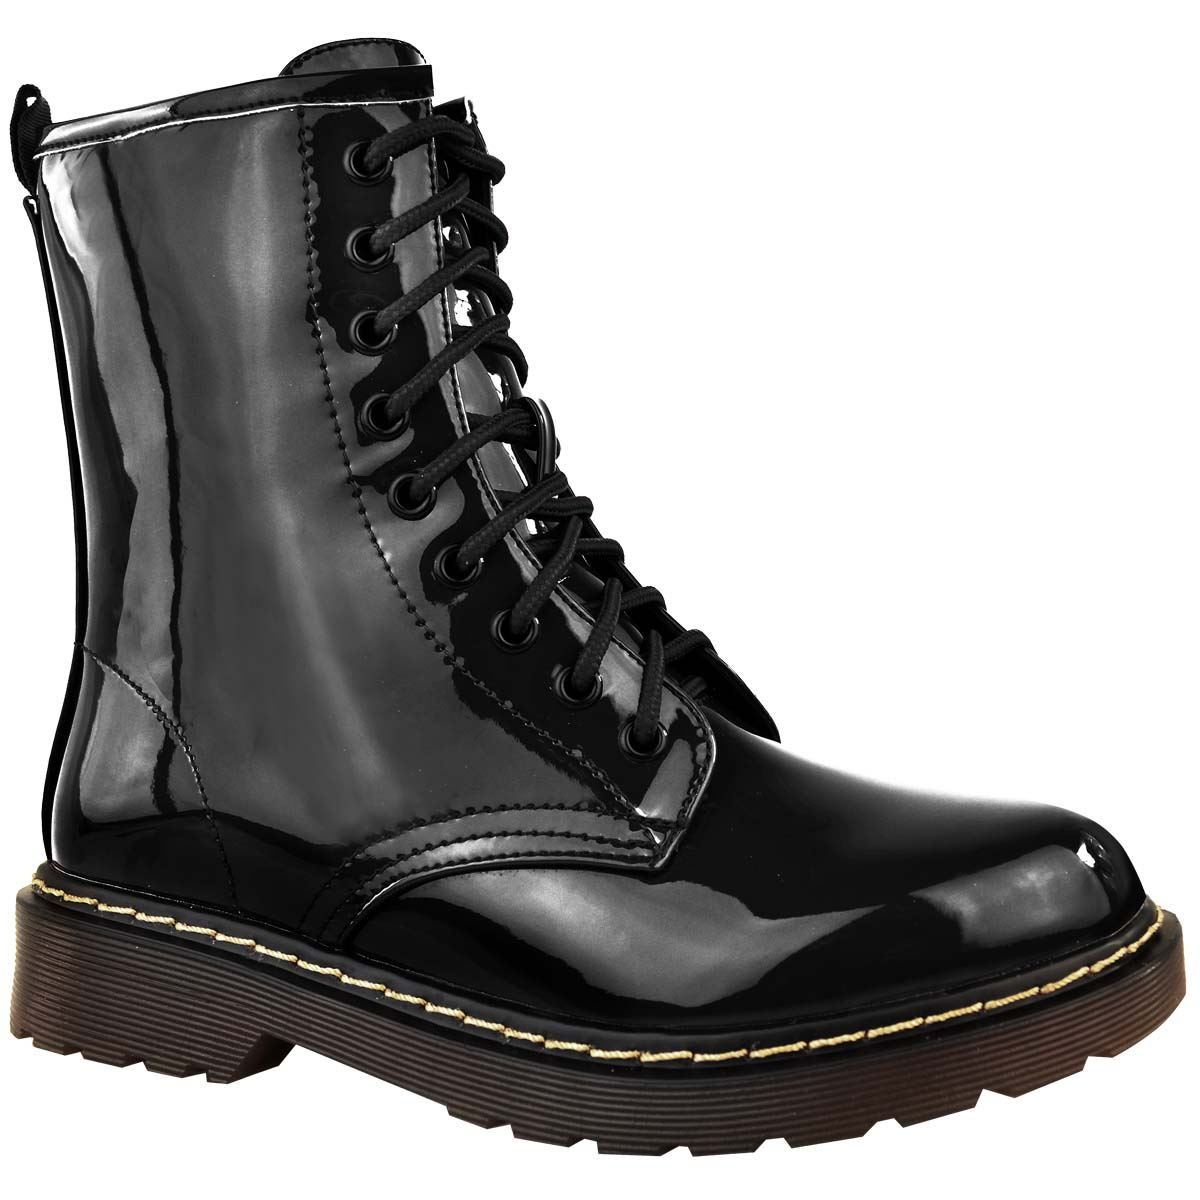 Womens-Ladies-Doc-Ankle-Boots-Low-Flat-Heel-Lace-Up-Worker-Army-Black-Goth-Size thumbnail 8